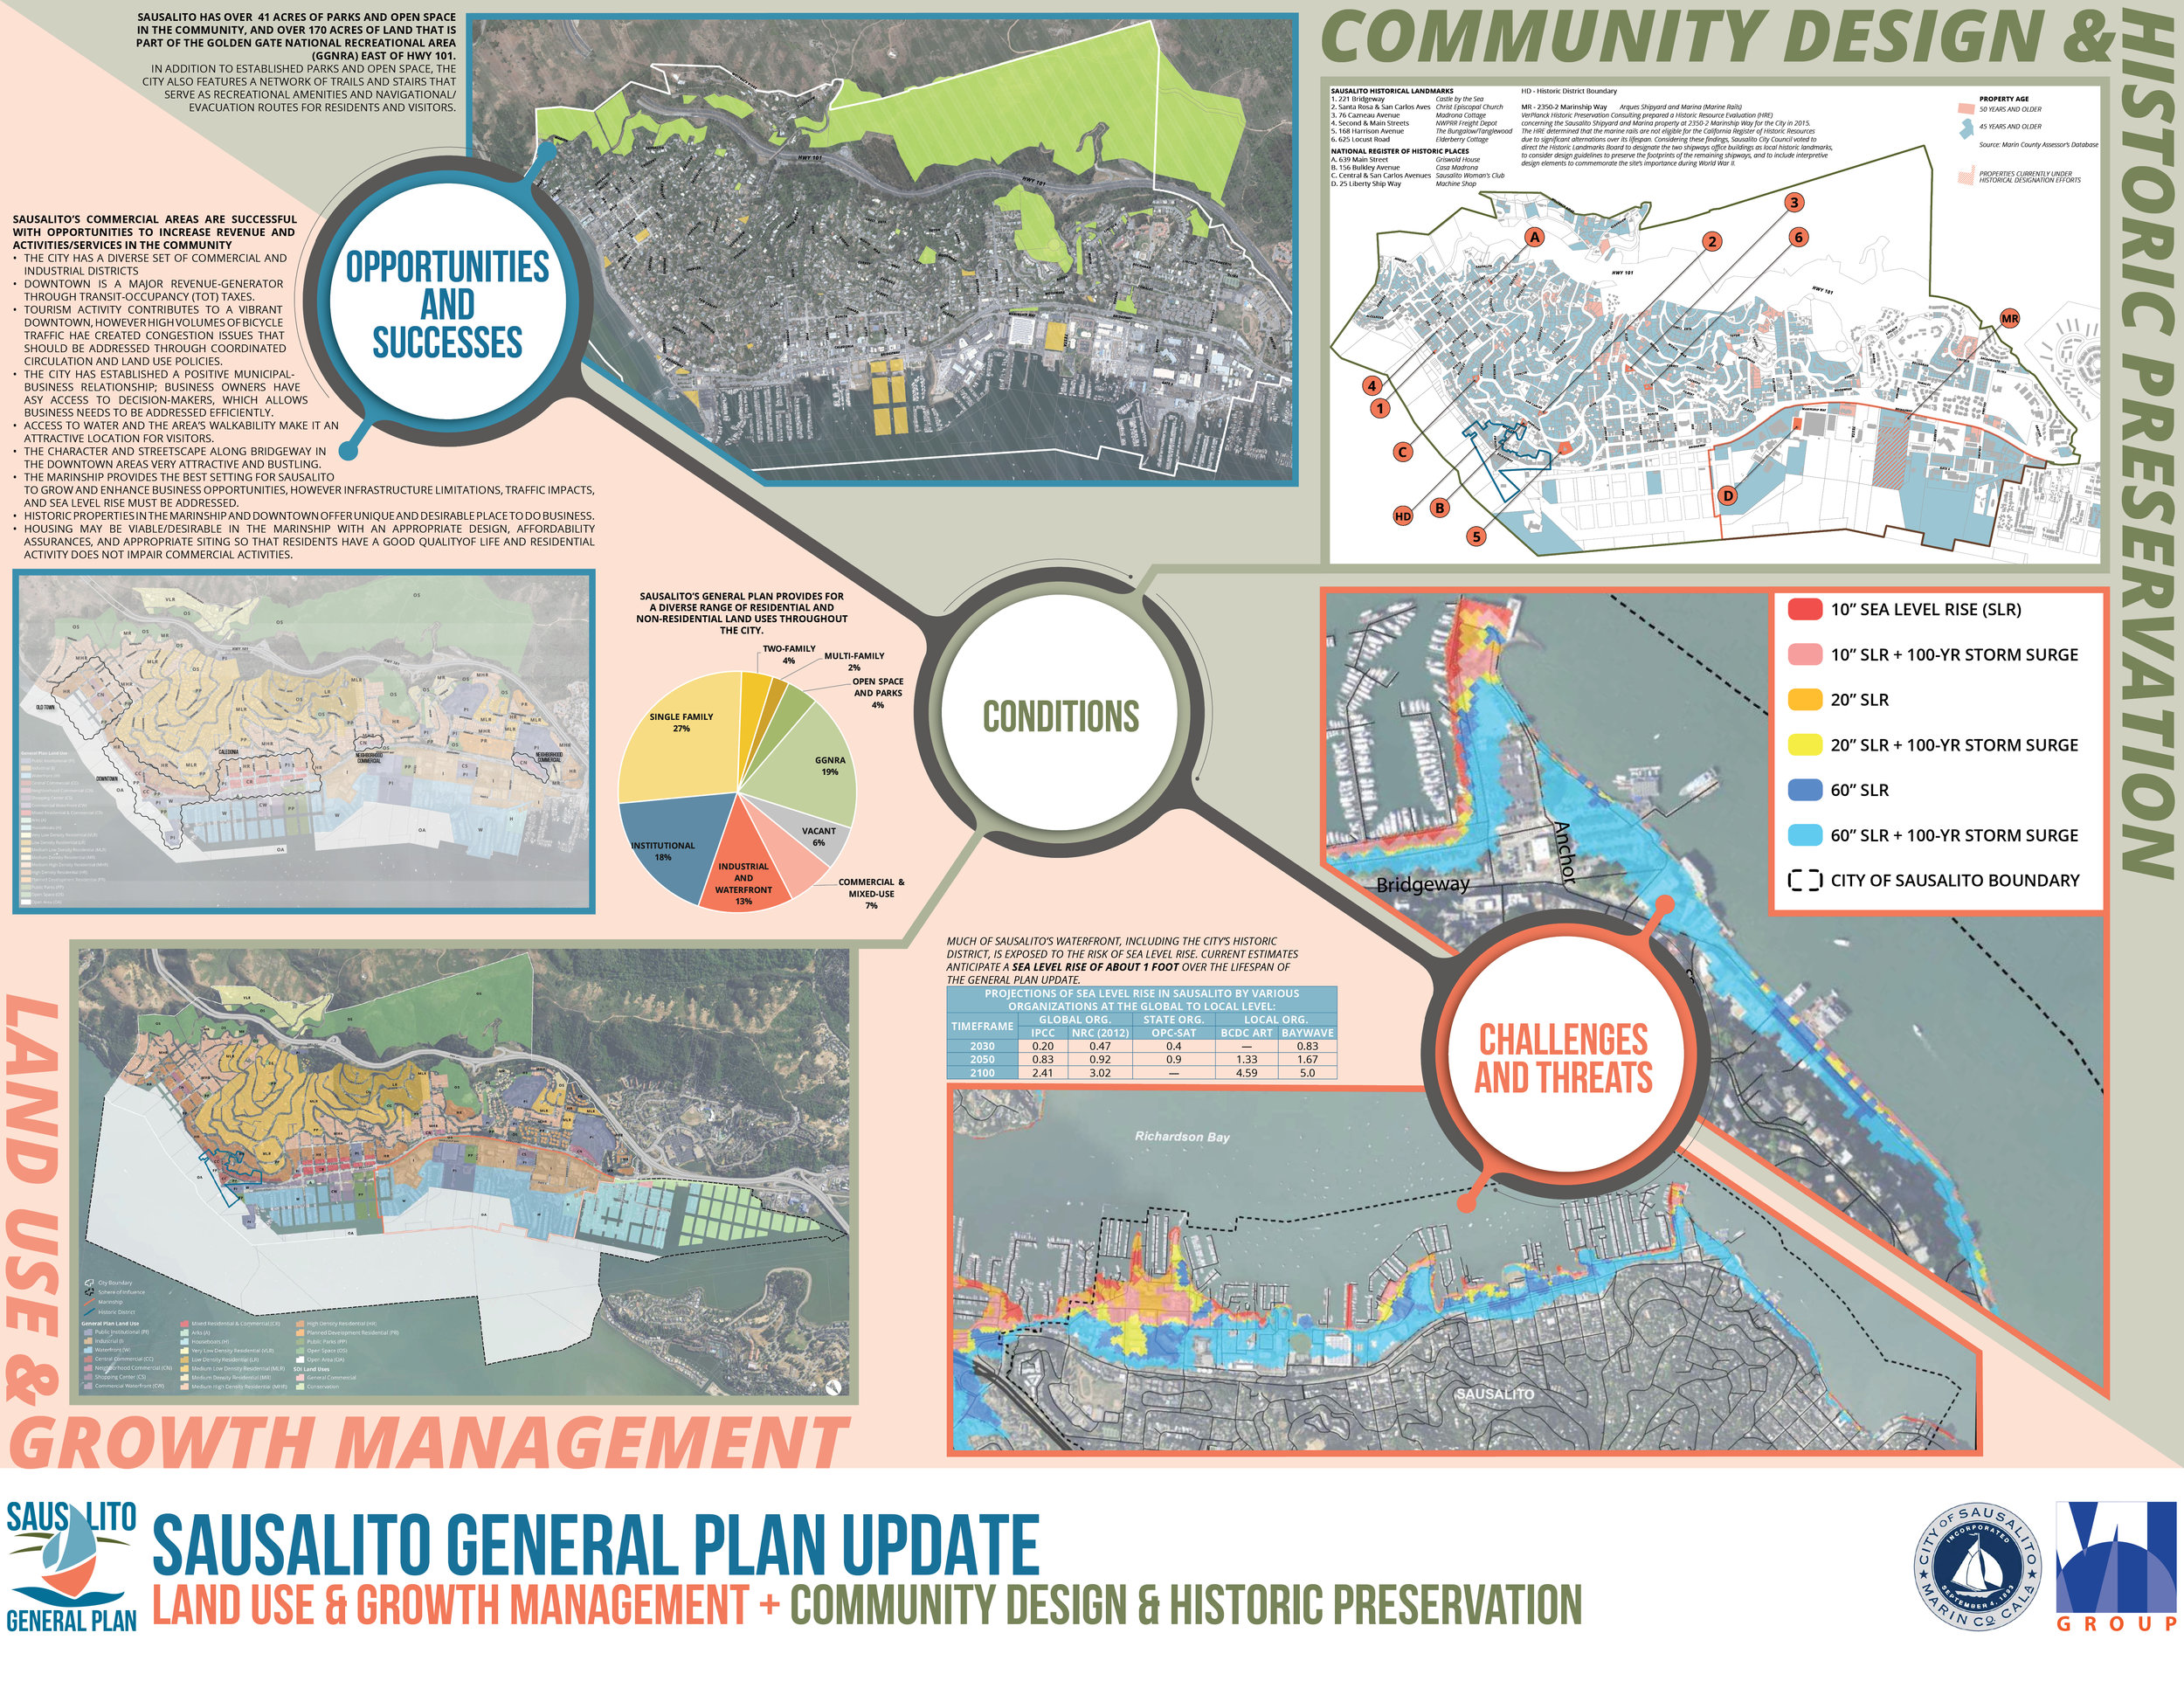 Land Use and Growth Management and Community Design and Historic Preservation.jpg